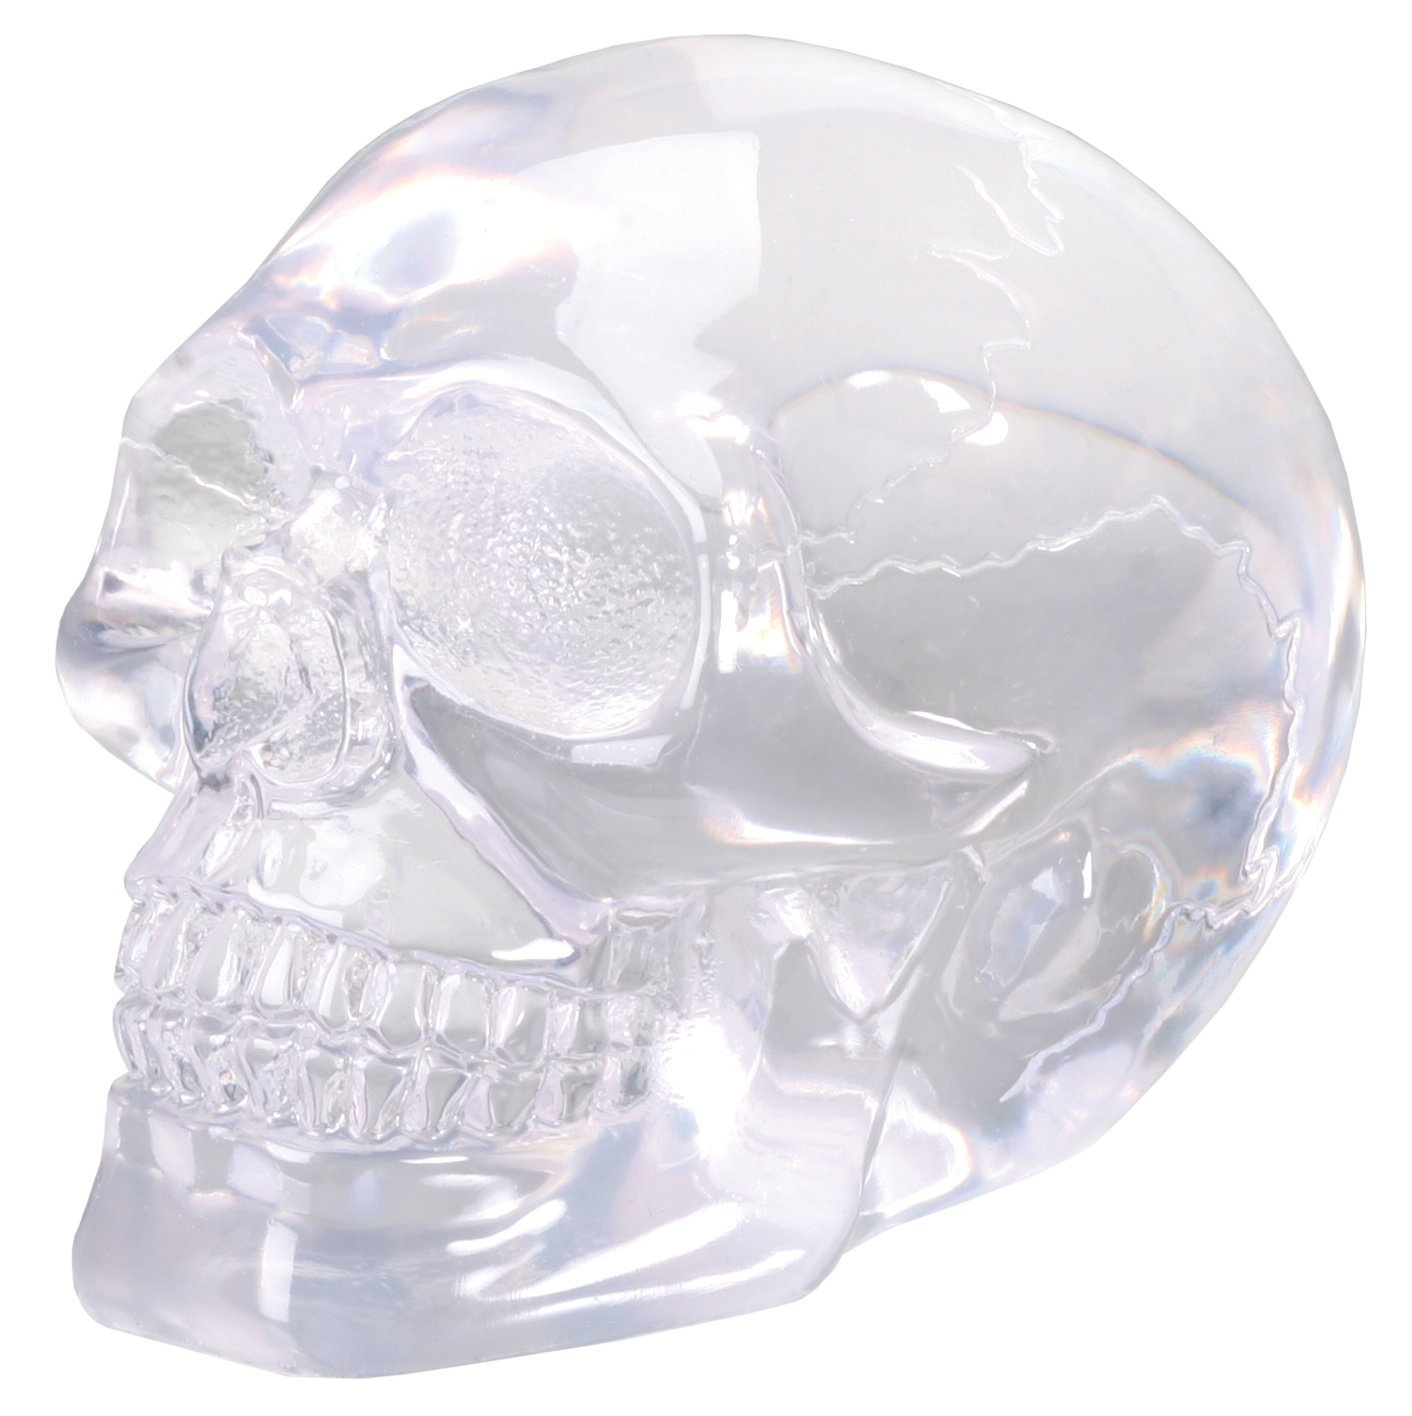 Small Clear Translucent Skull Collectible Figurine